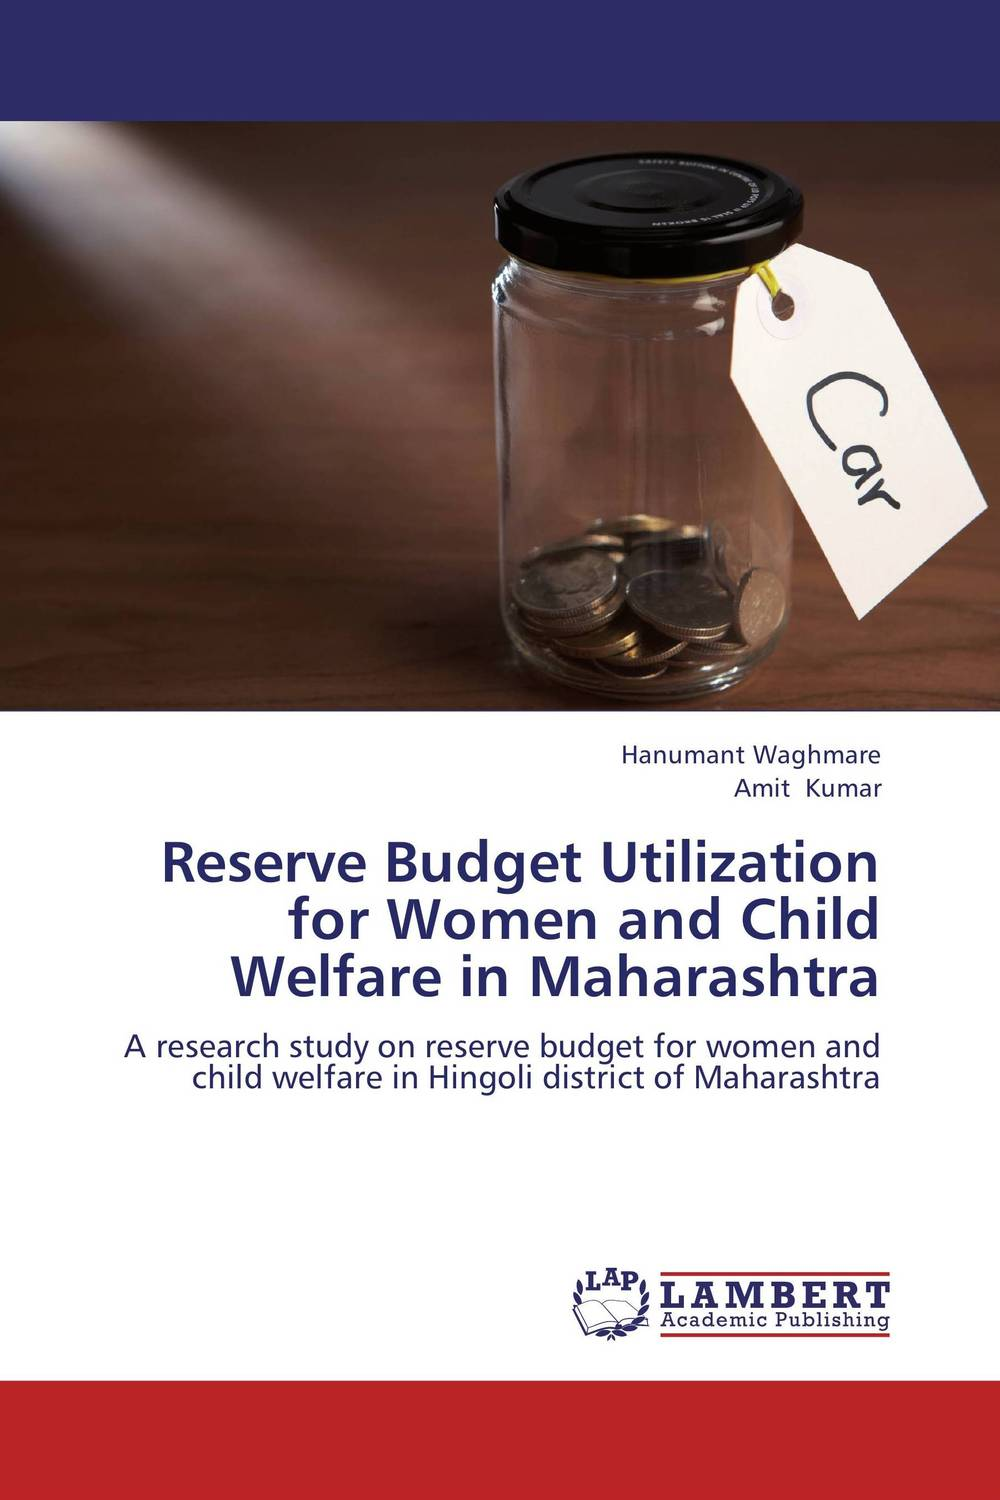 Reserve Budget Utilization for Women and Child Welfare in Maharashtra reserve budget utilization for women and child welfare in maharashtra